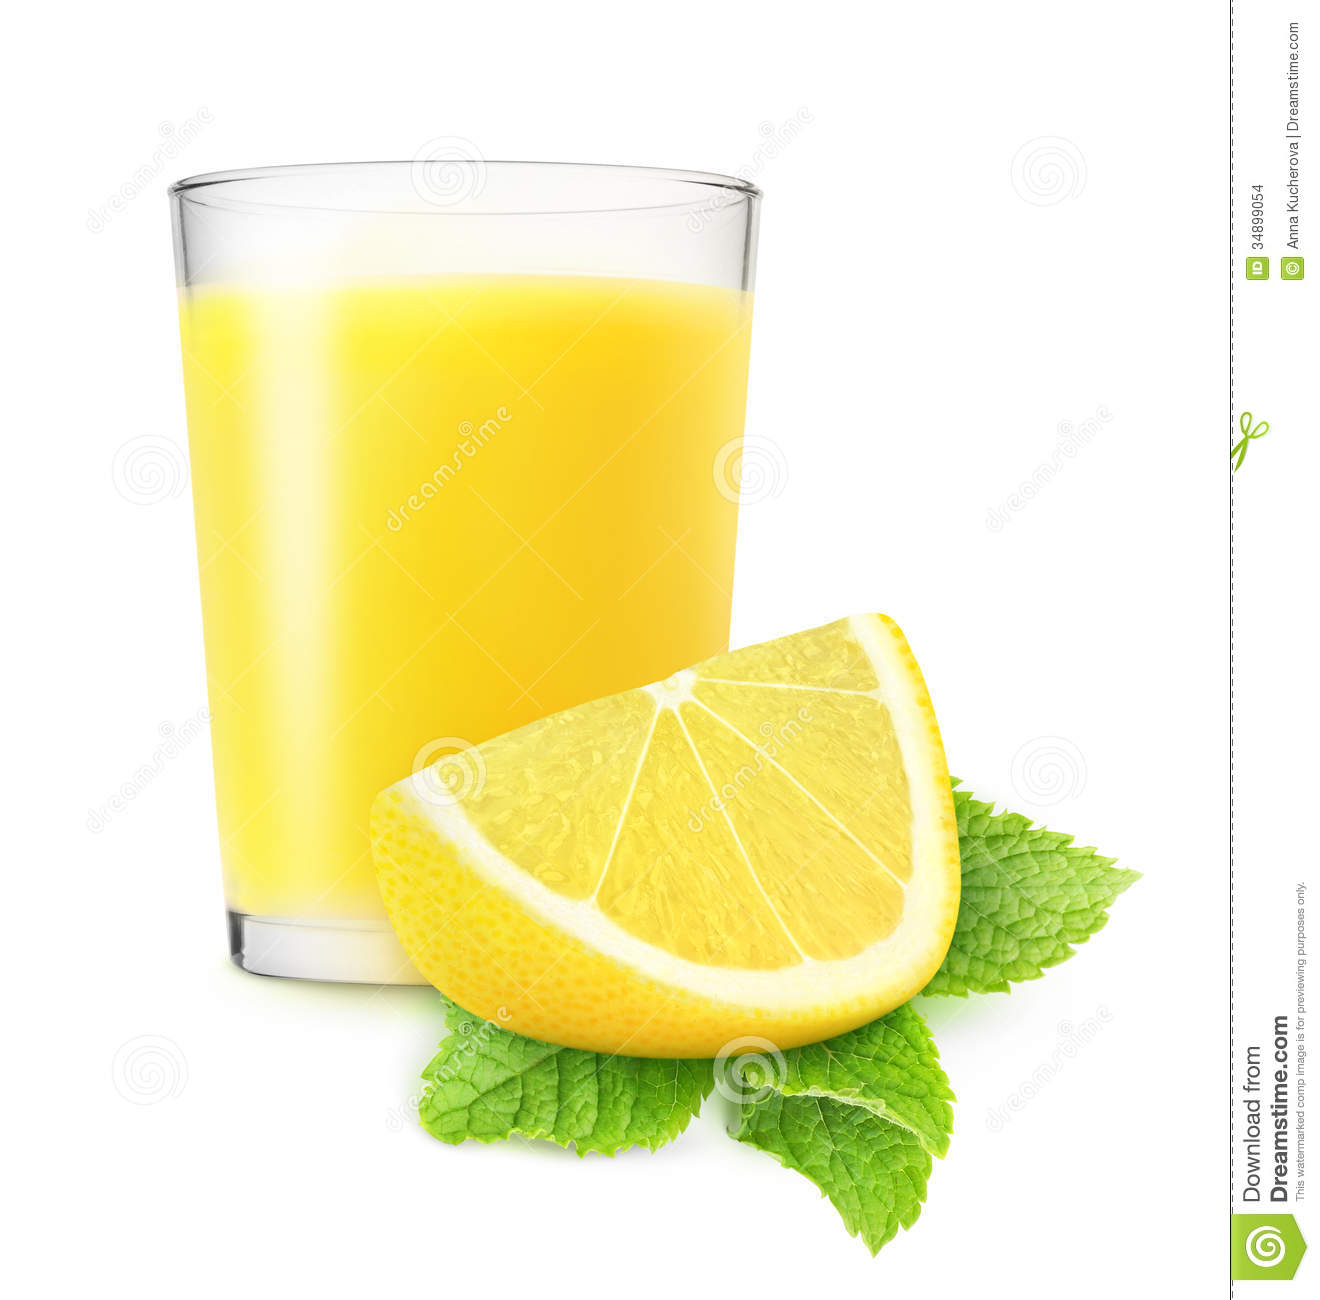 Honey Sweetened Orange Blossom Lemonade furthermore Juice further Royalty Free Stock Photo Juice To Pour Pitcher Image3794555 in addition Mango Juice together with 404587. on orange juice pitcher